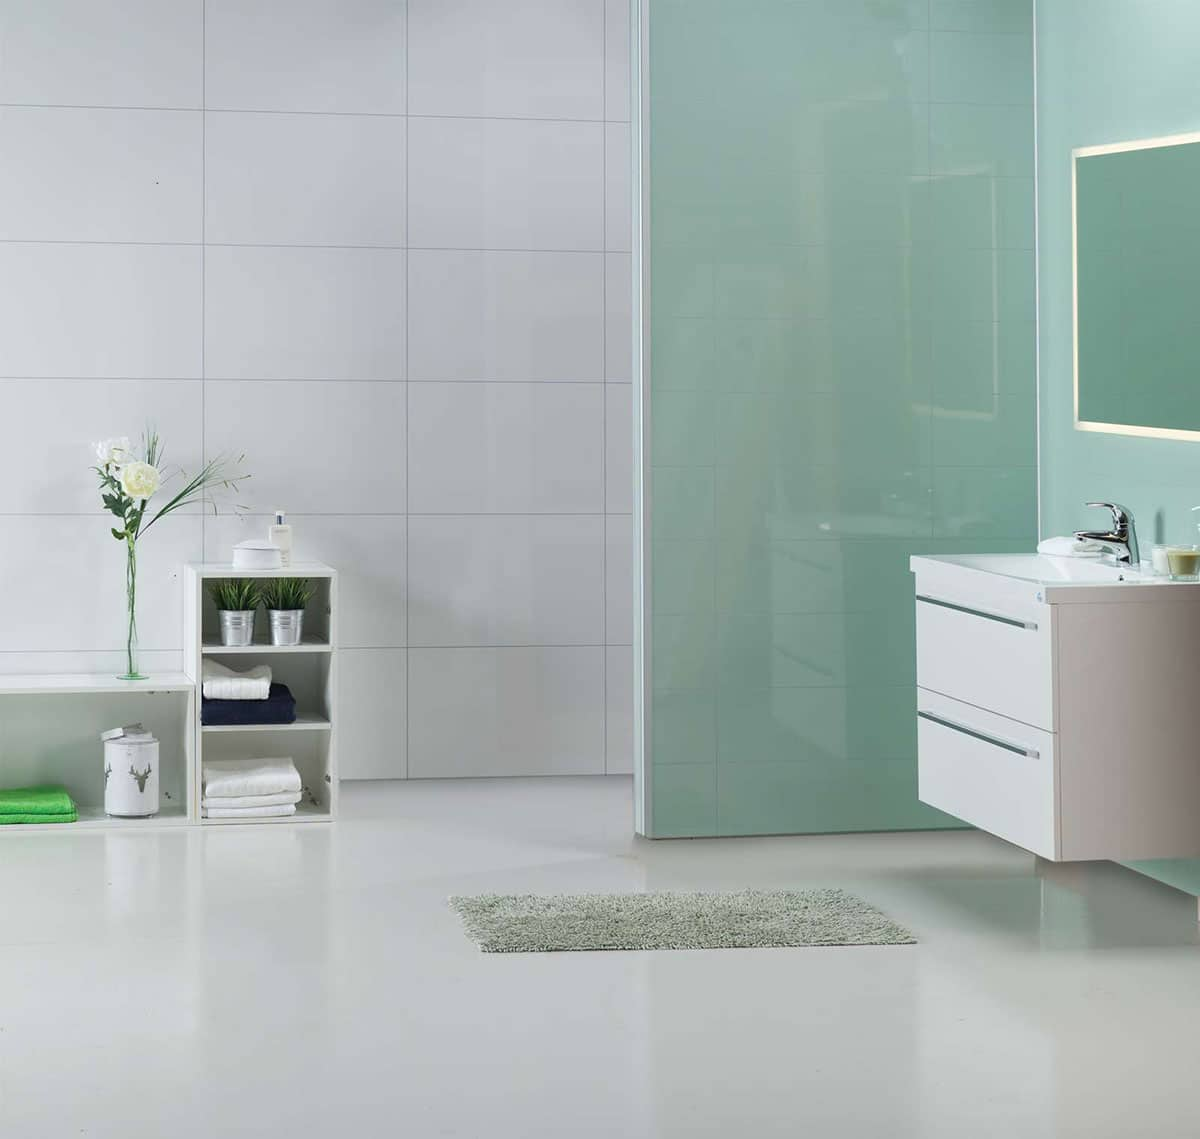 Laminated Bathroom Wall Panels, Shower Pans & Accessories ...